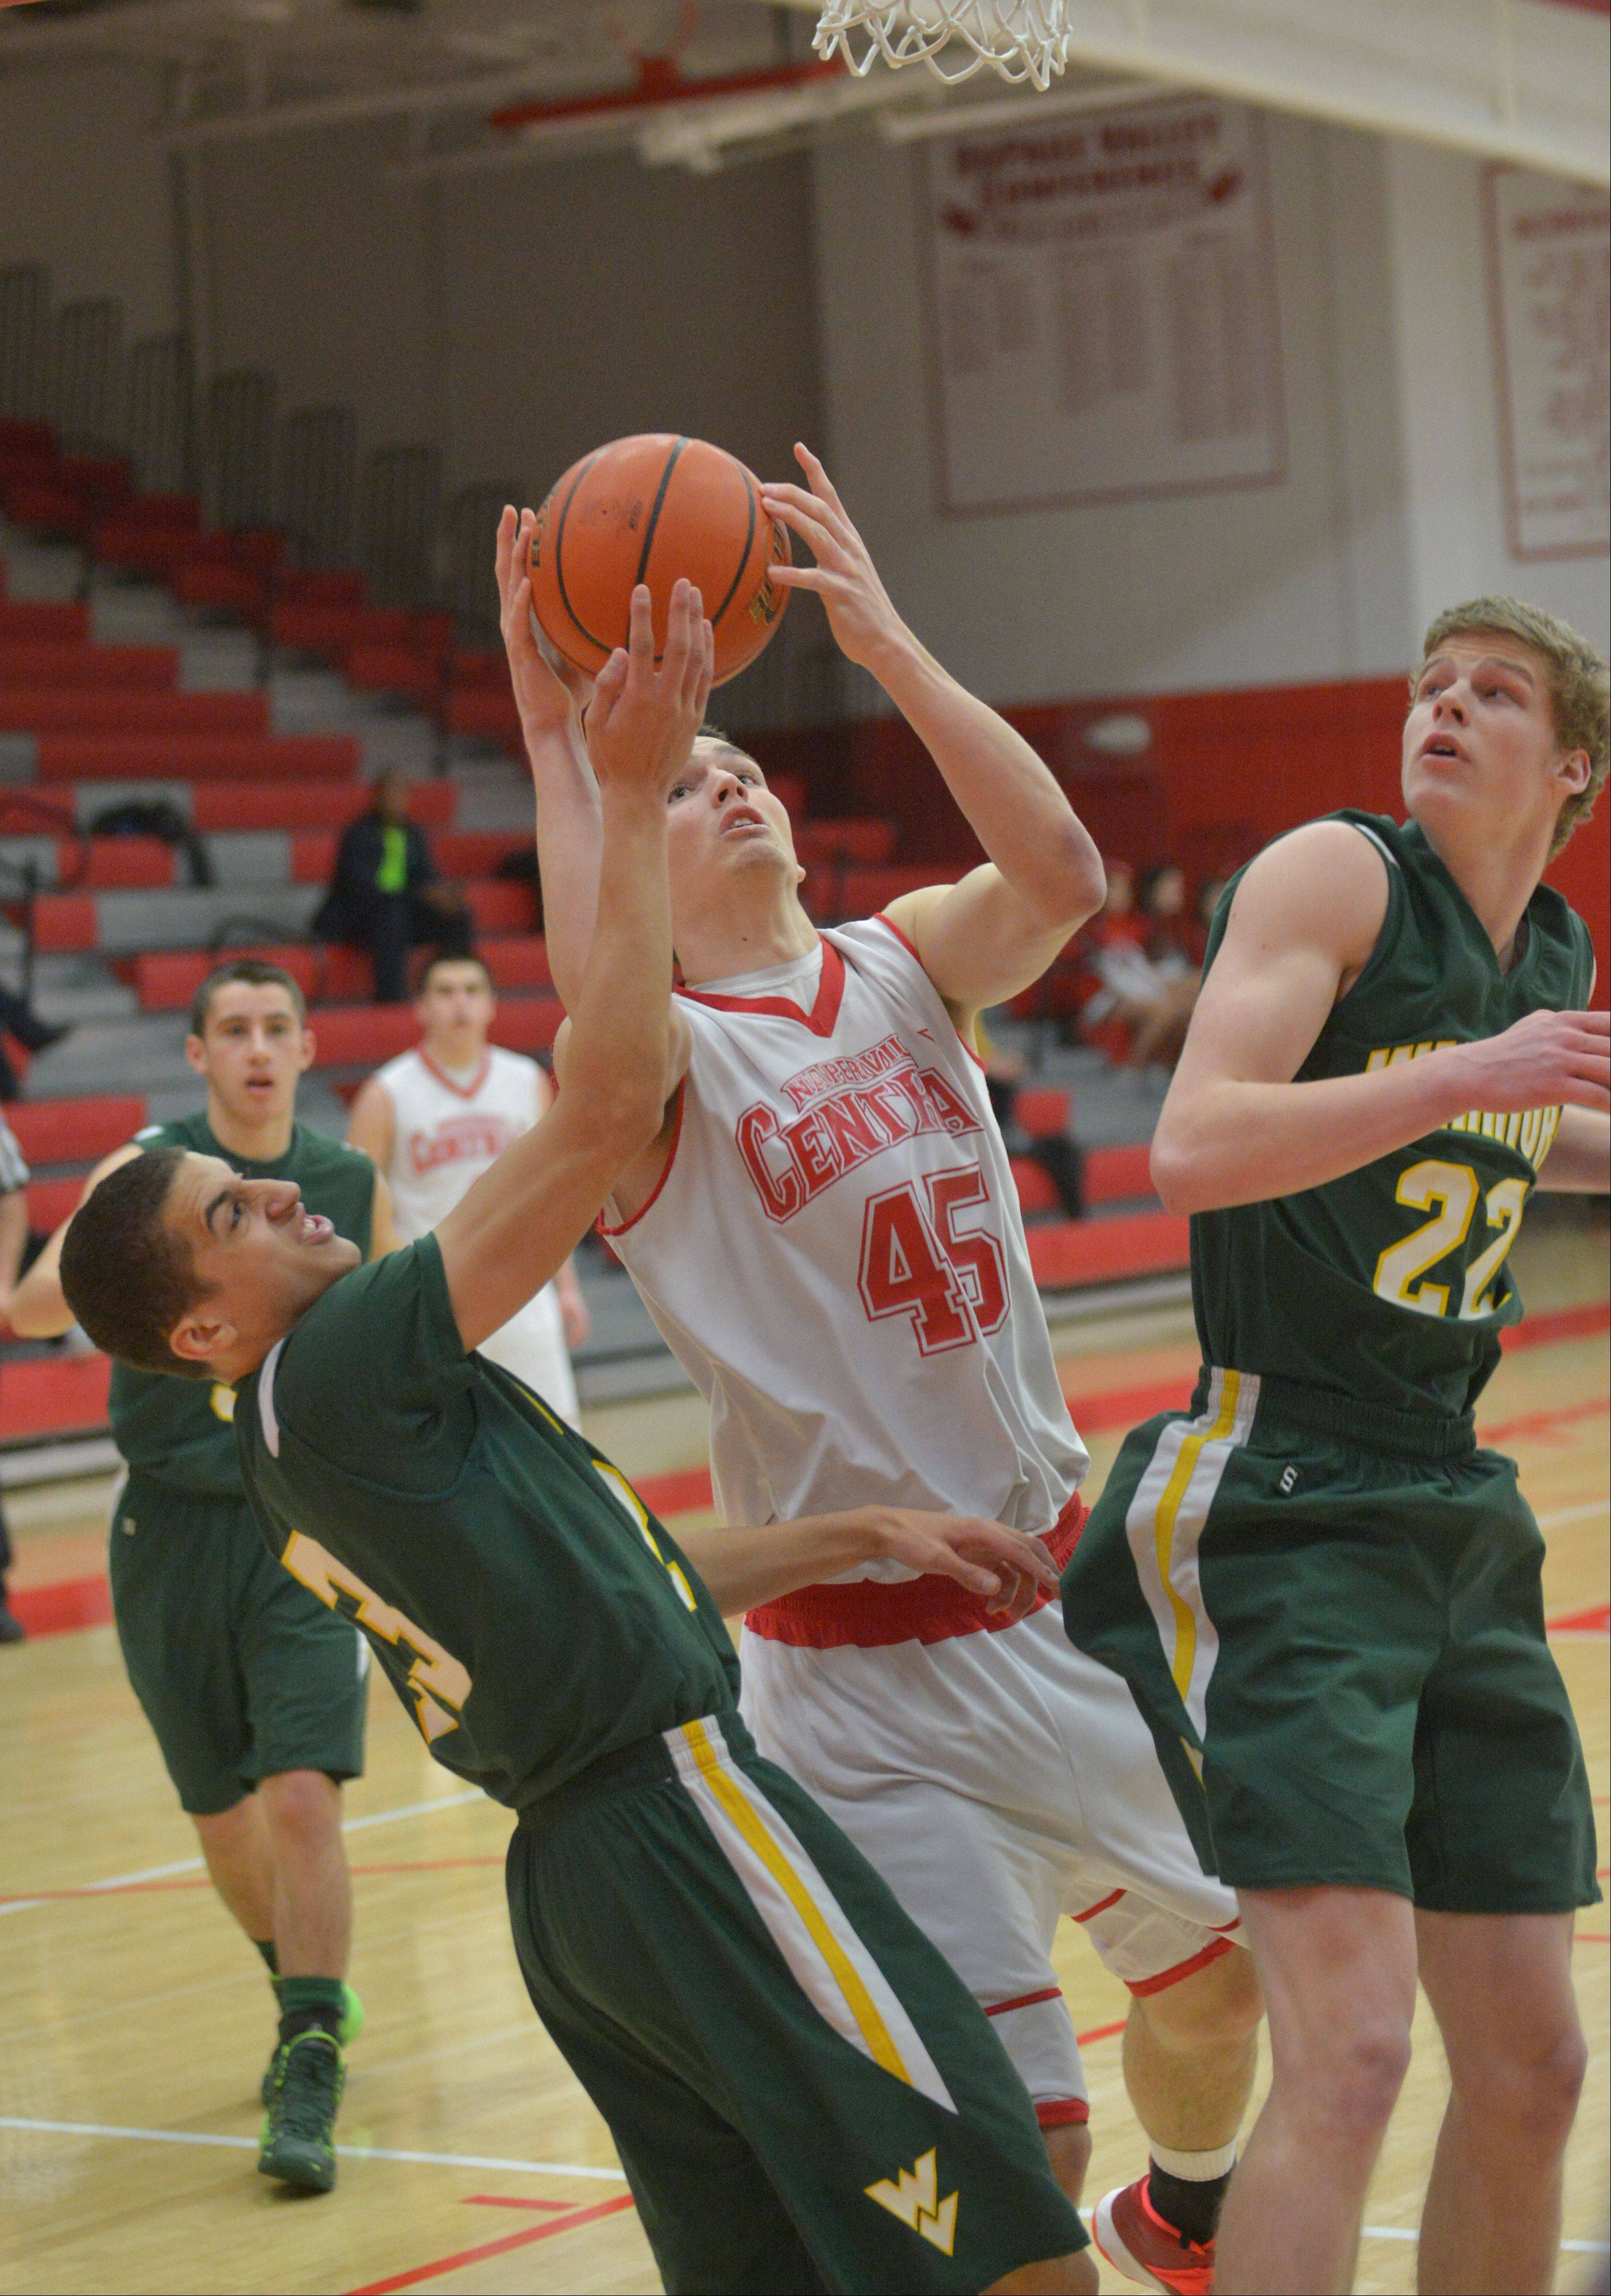 Photos from the Waubonsie Valley at Naperville Central boys basketball game Tuesday, Jan. 14 in Naperville.